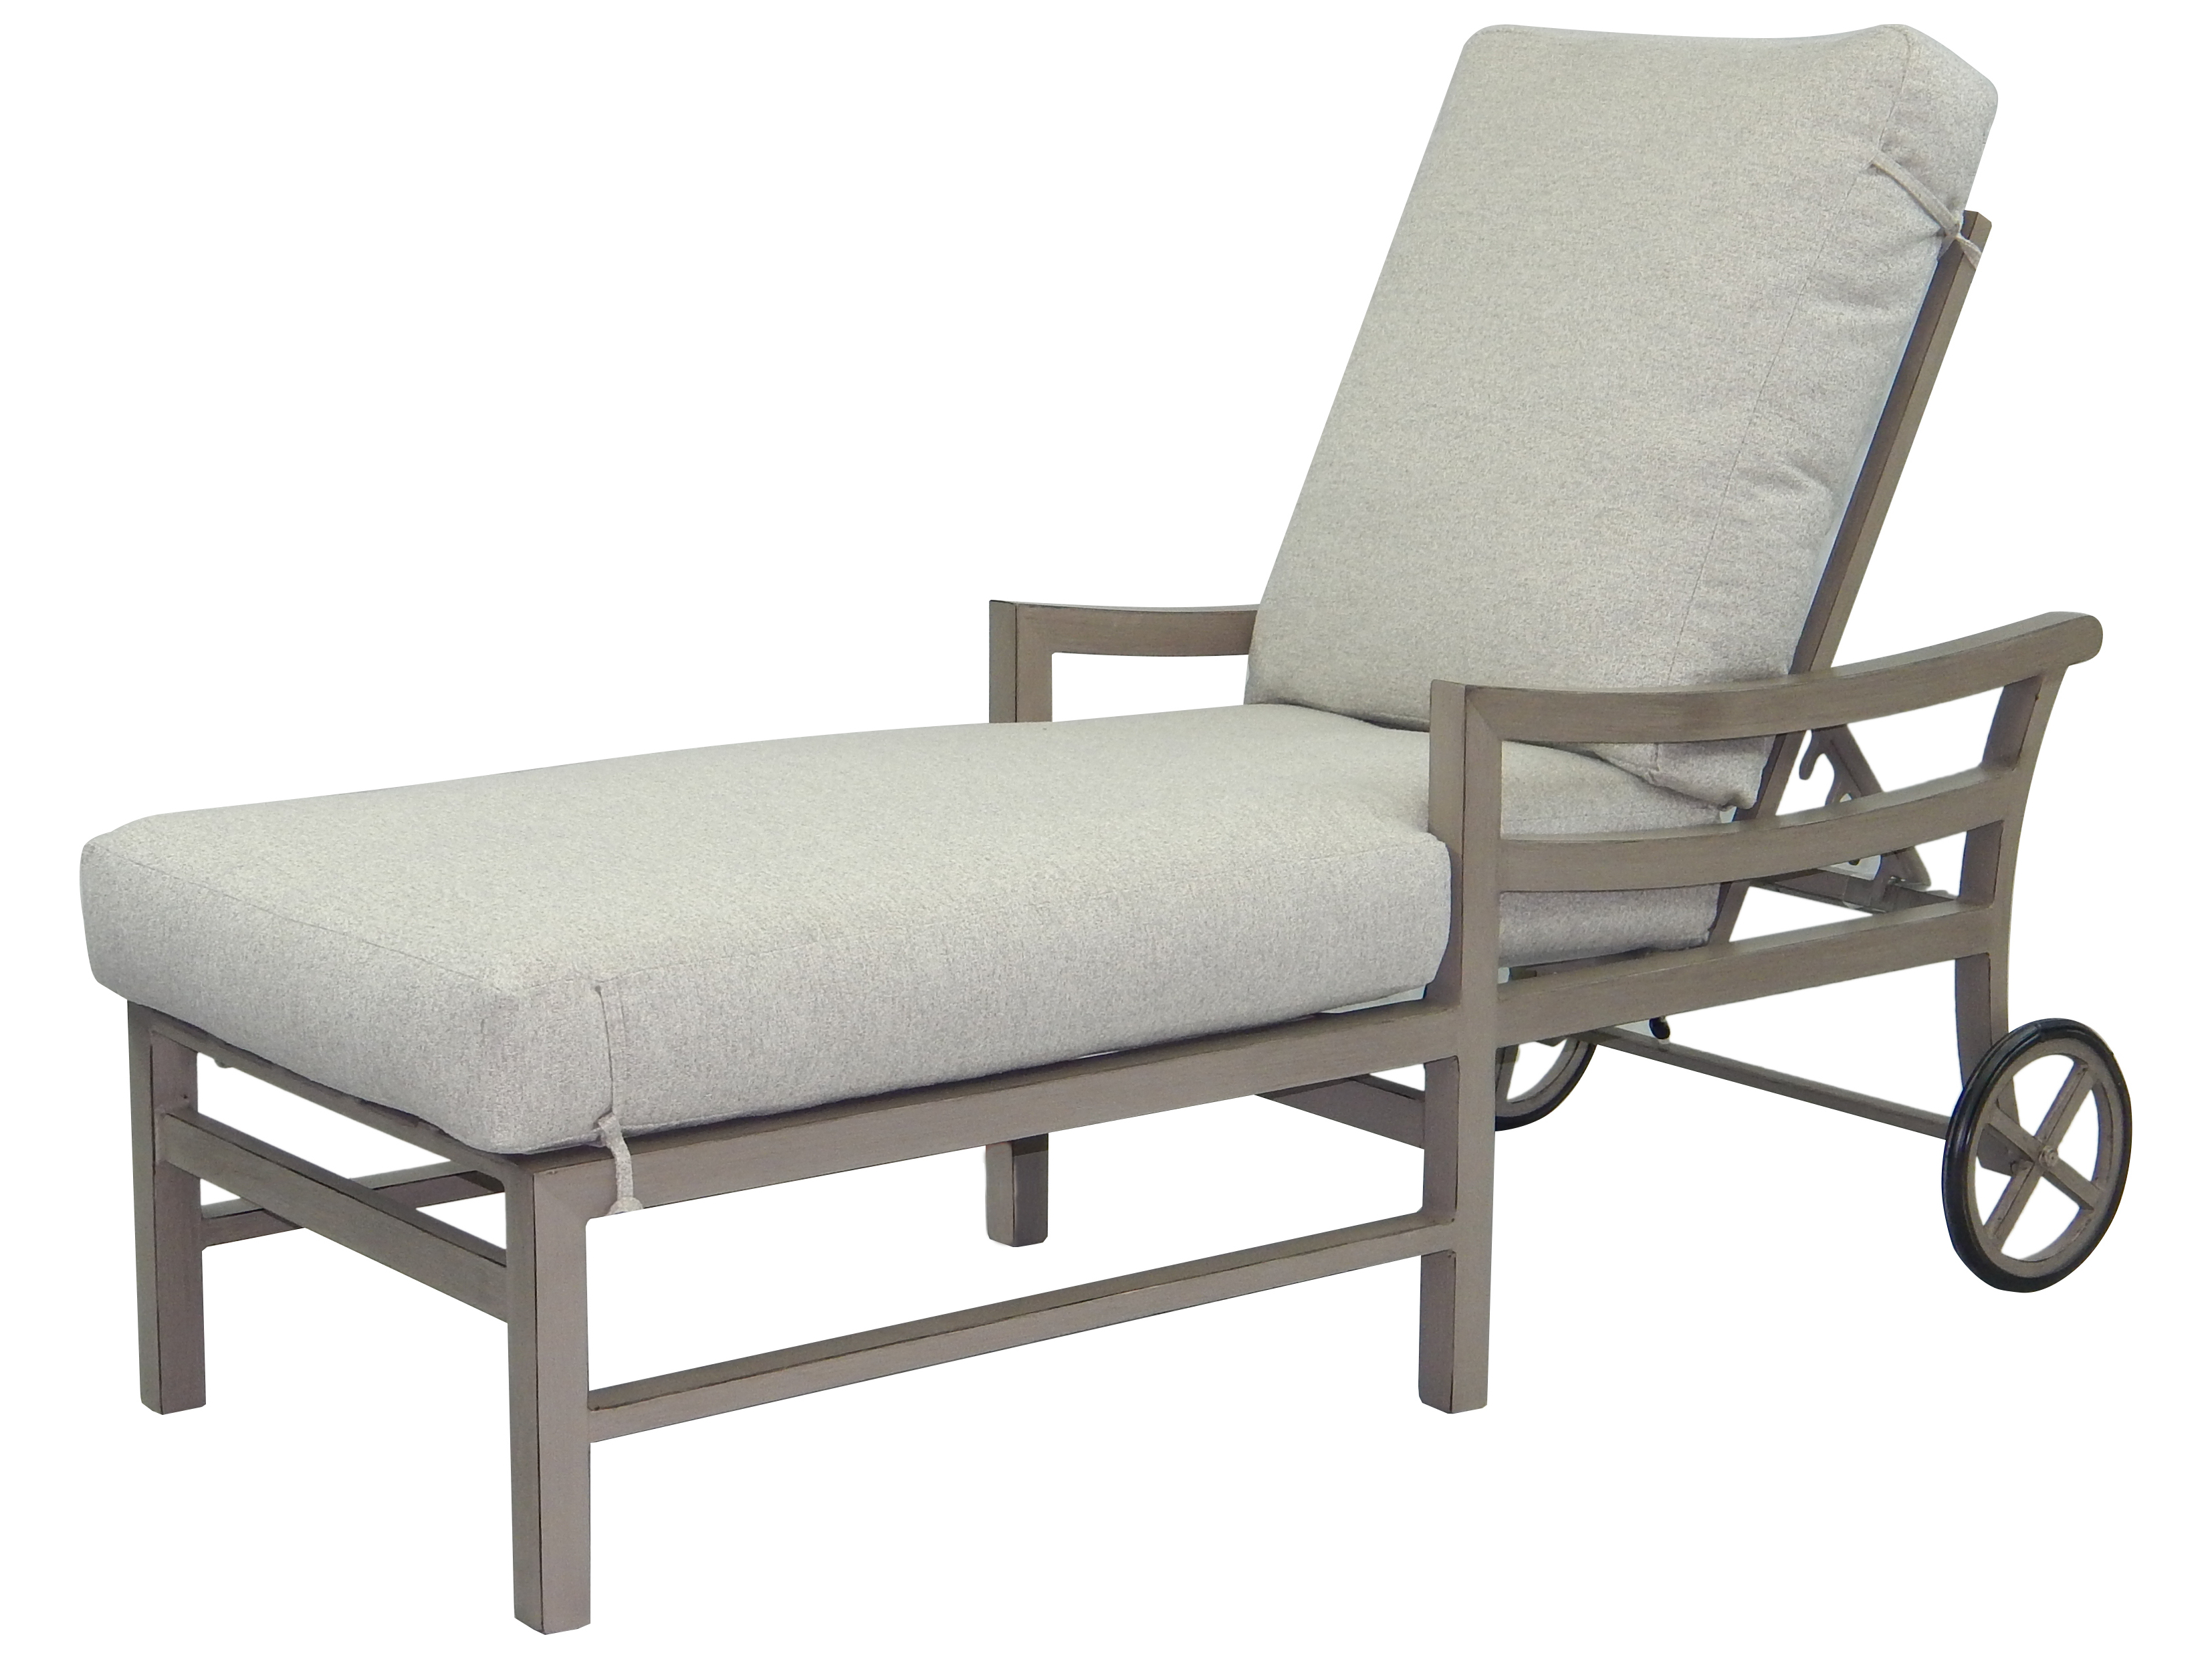 Current Outdoor Aluminum Adjustable Chaise Lounges With Castelle Roma Cushion Aluminum Adjustable Chaise Lounge With Wheels (View 3 of 25)